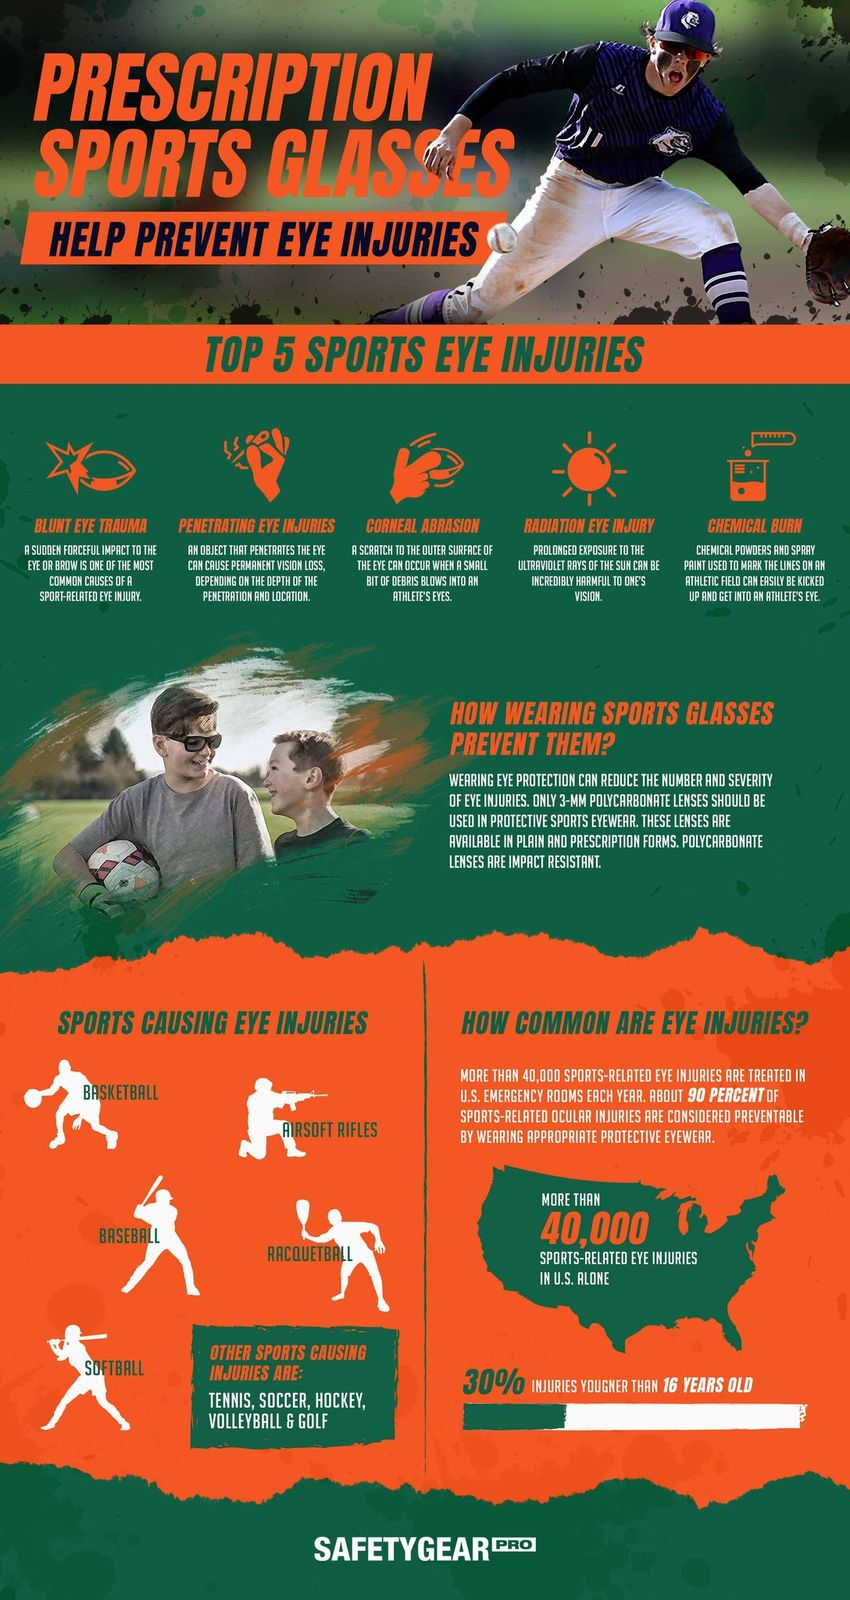 Avoiding Common Eye Injuries While Playing Sports Infographic